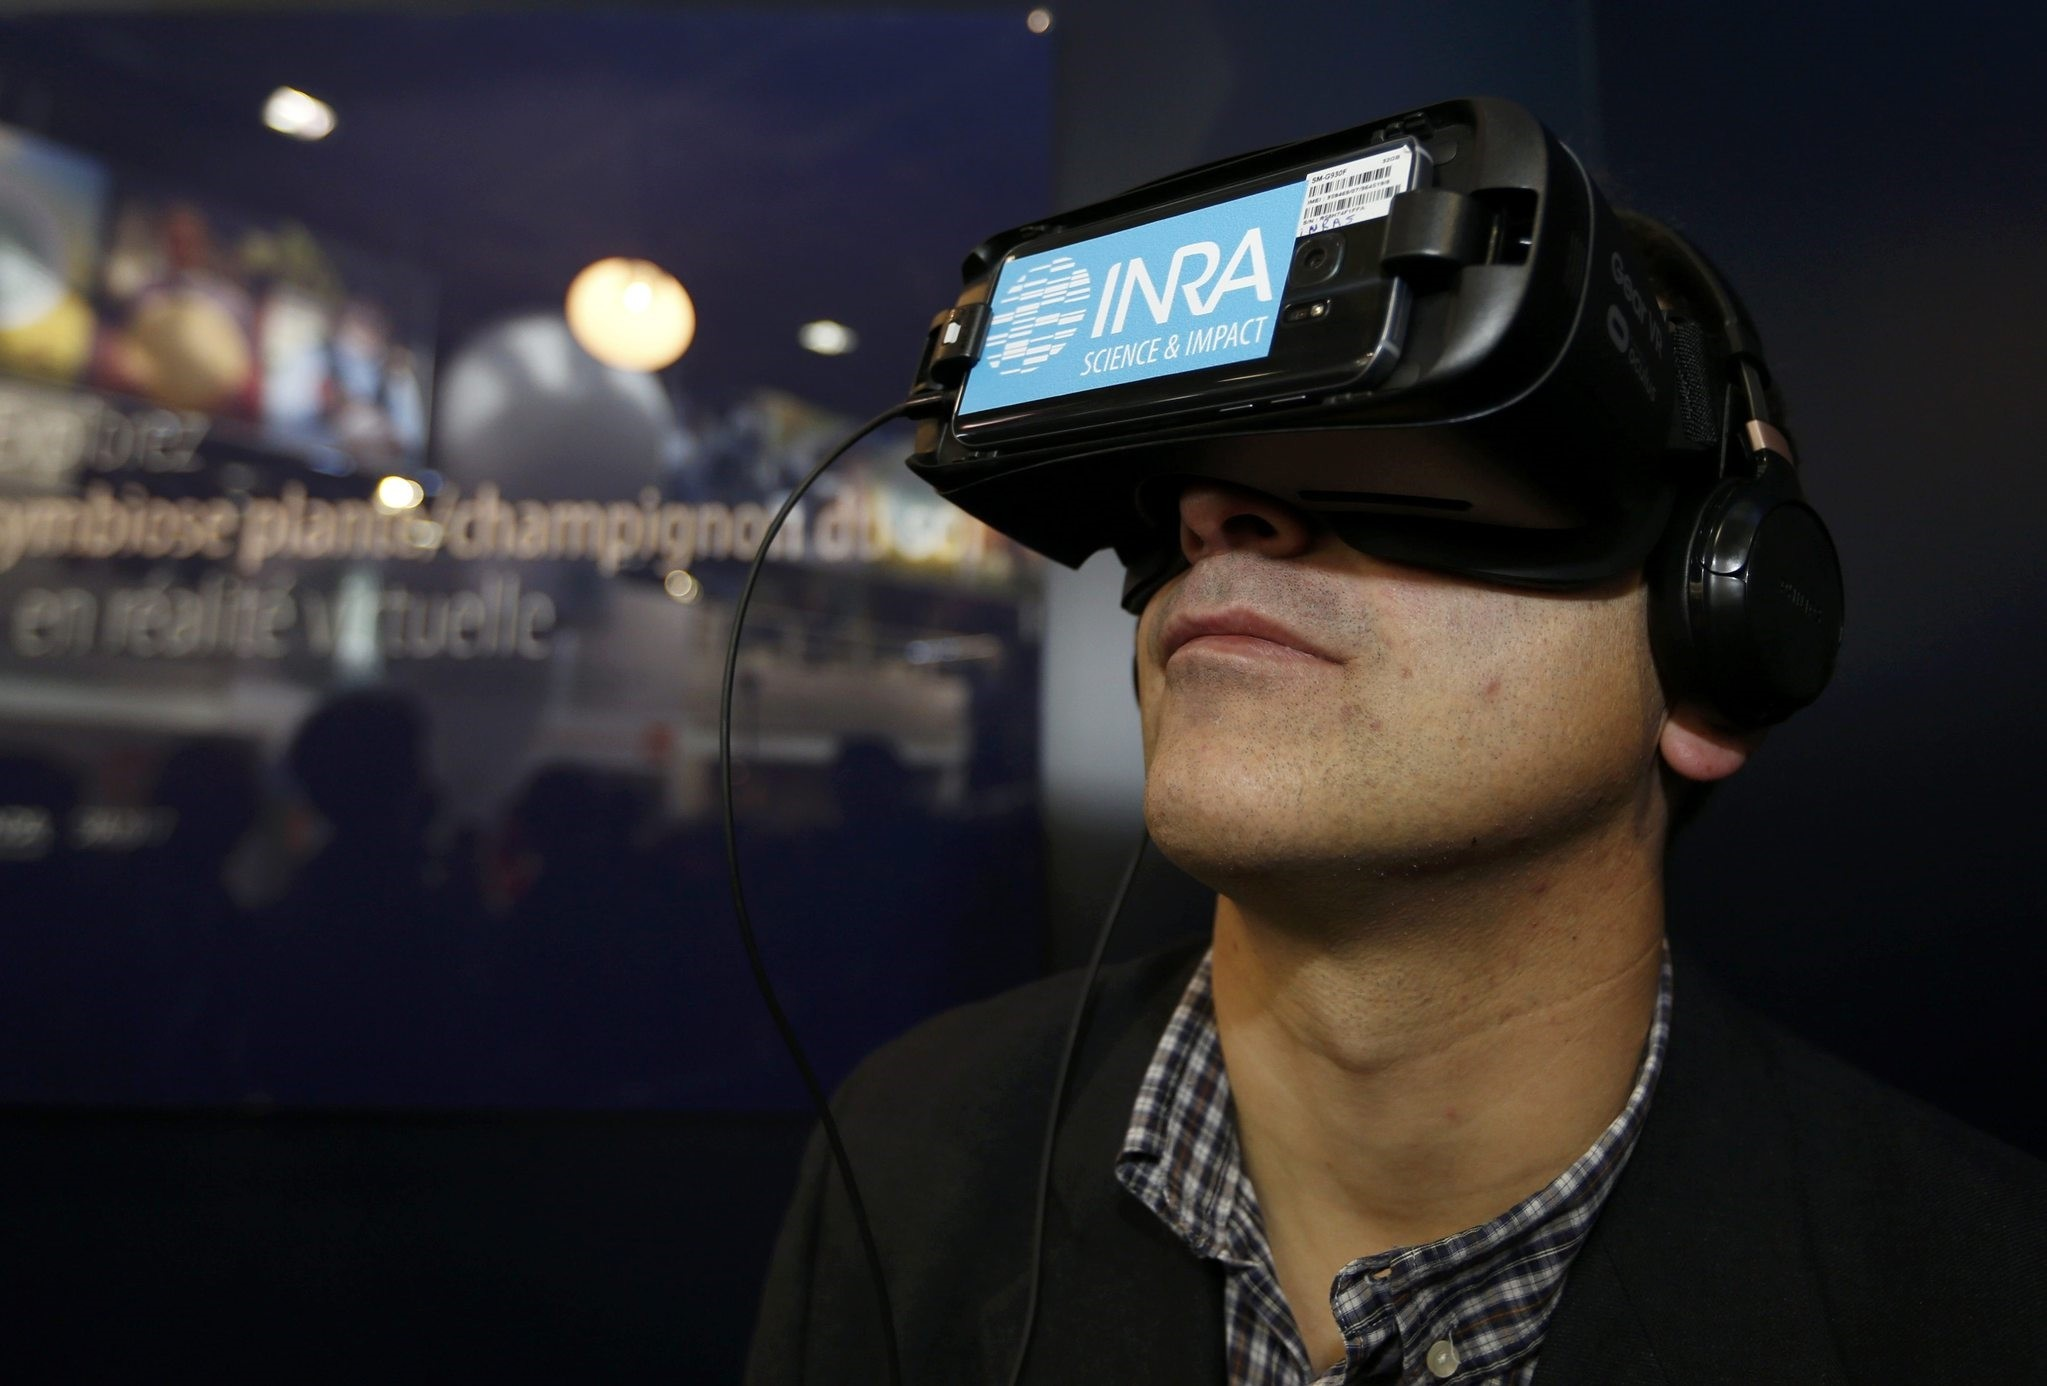 A visitor uses a virtual reality device with the INRA (National Institute for Agricultural Research) logo at the International Agricultural Show in Paris. (REUTERS Photo)